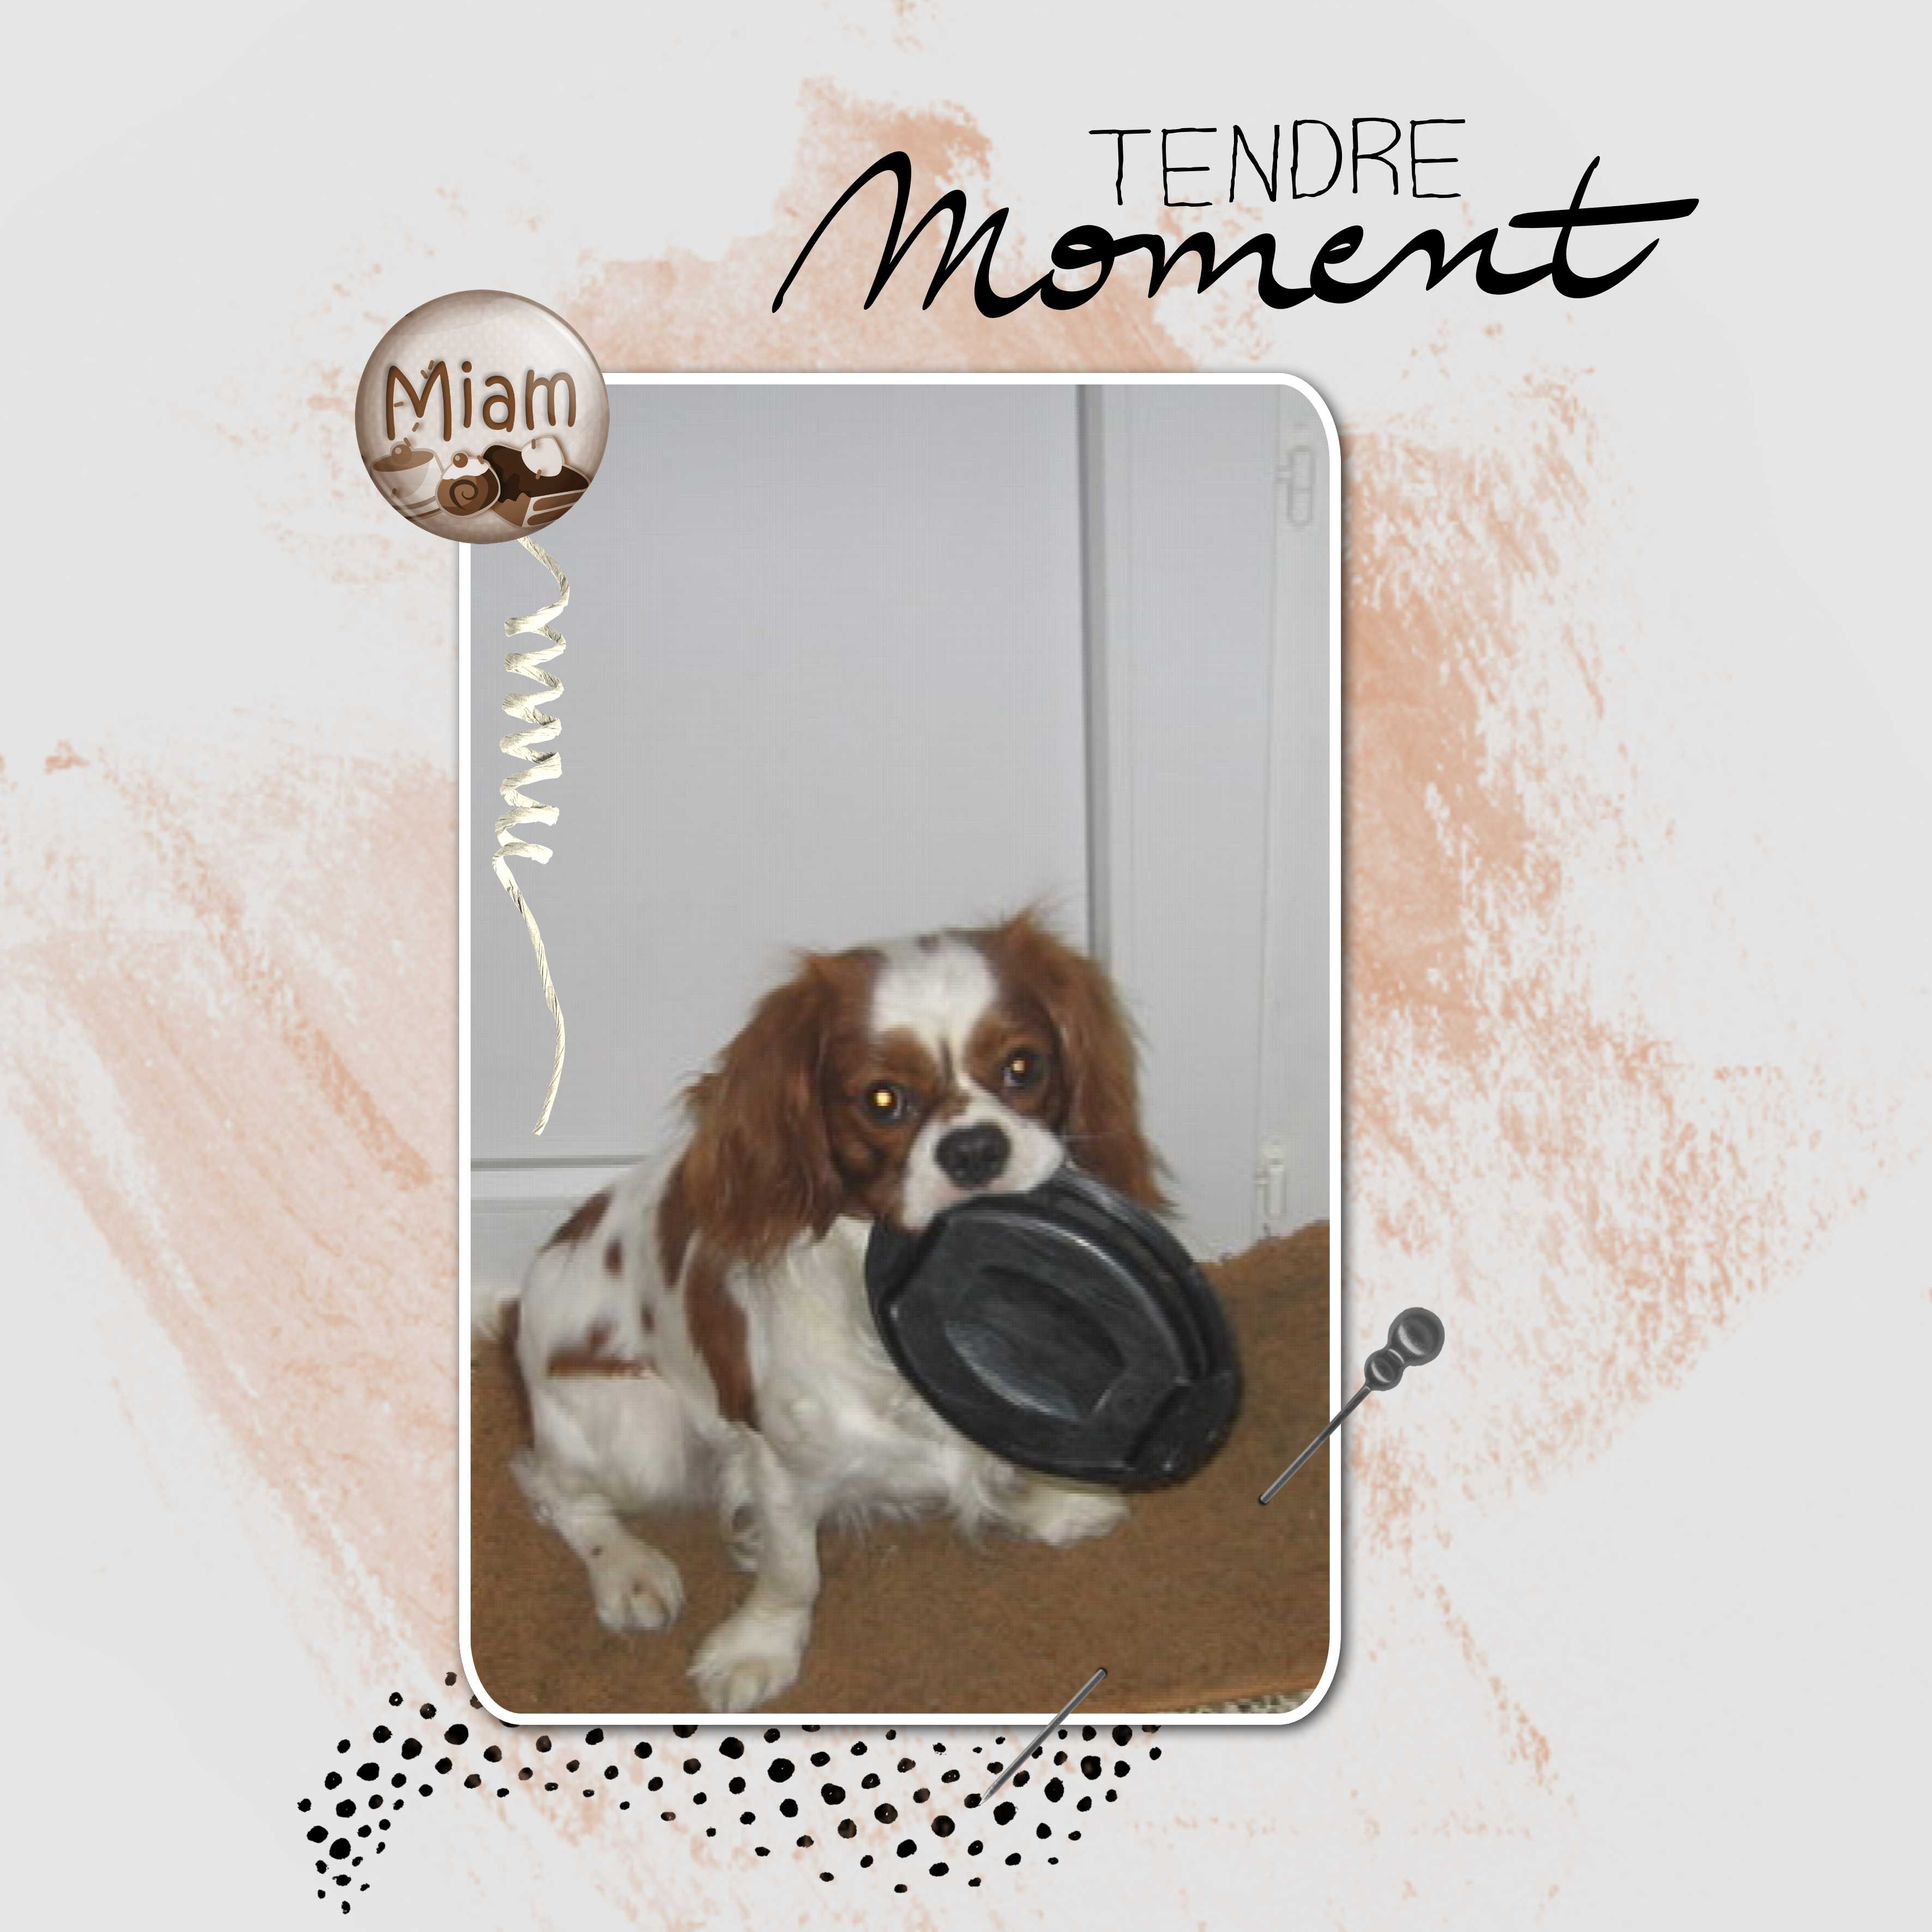 20-9-13c-TEMPLATE TENDRE MOMENT.jpg